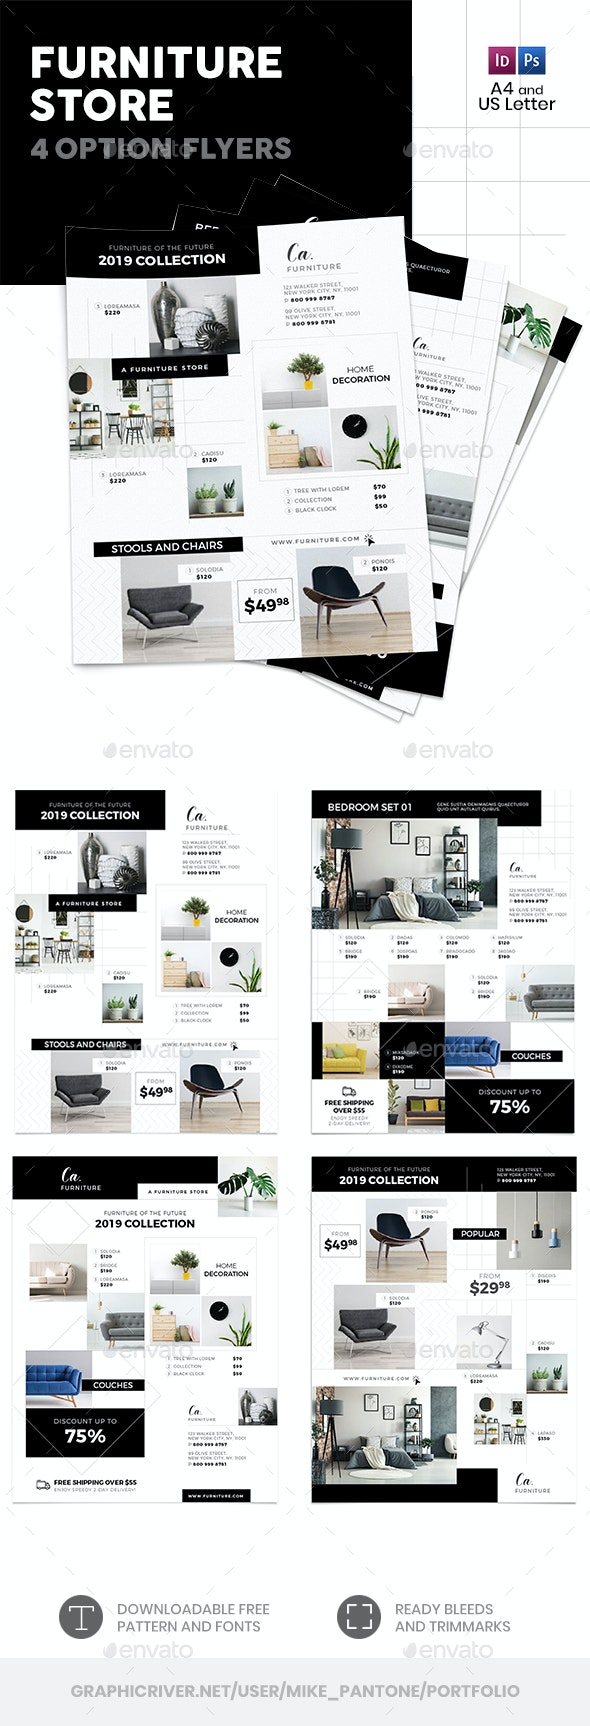 Furniture Store Flyers 4 – 4 Options - Commerce Flyers